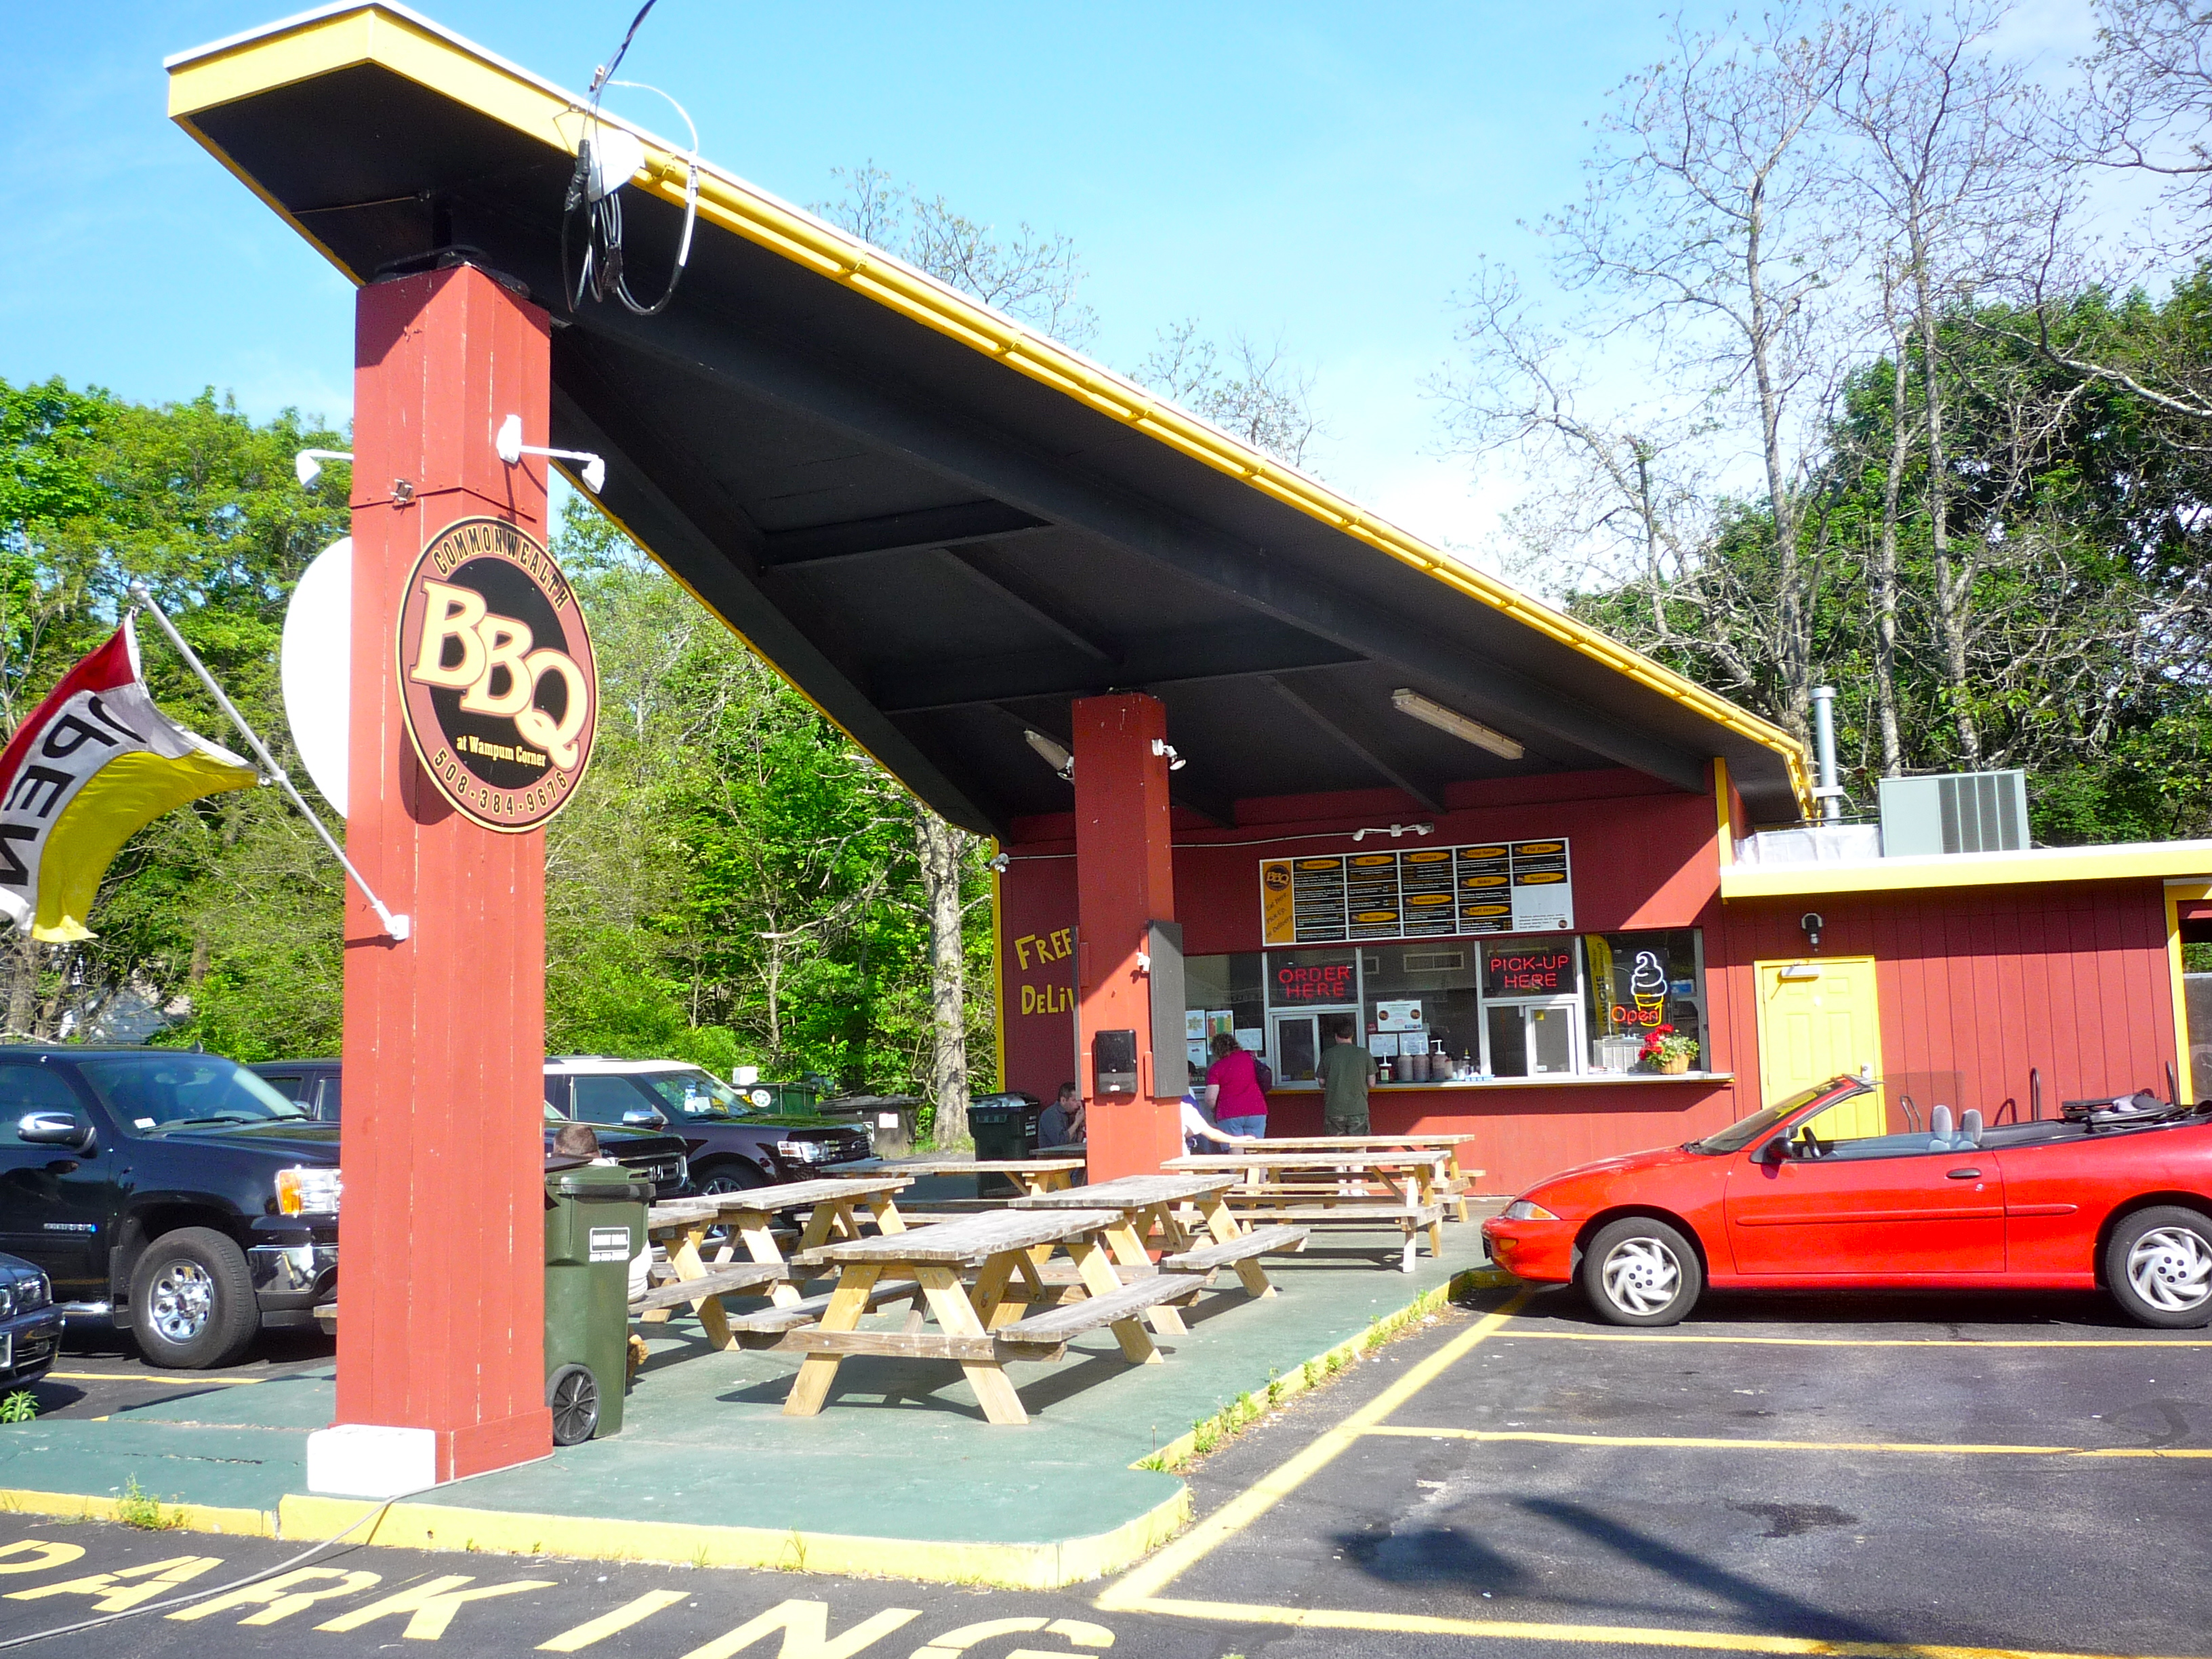 Commonwealth BBQ Wrentham MA